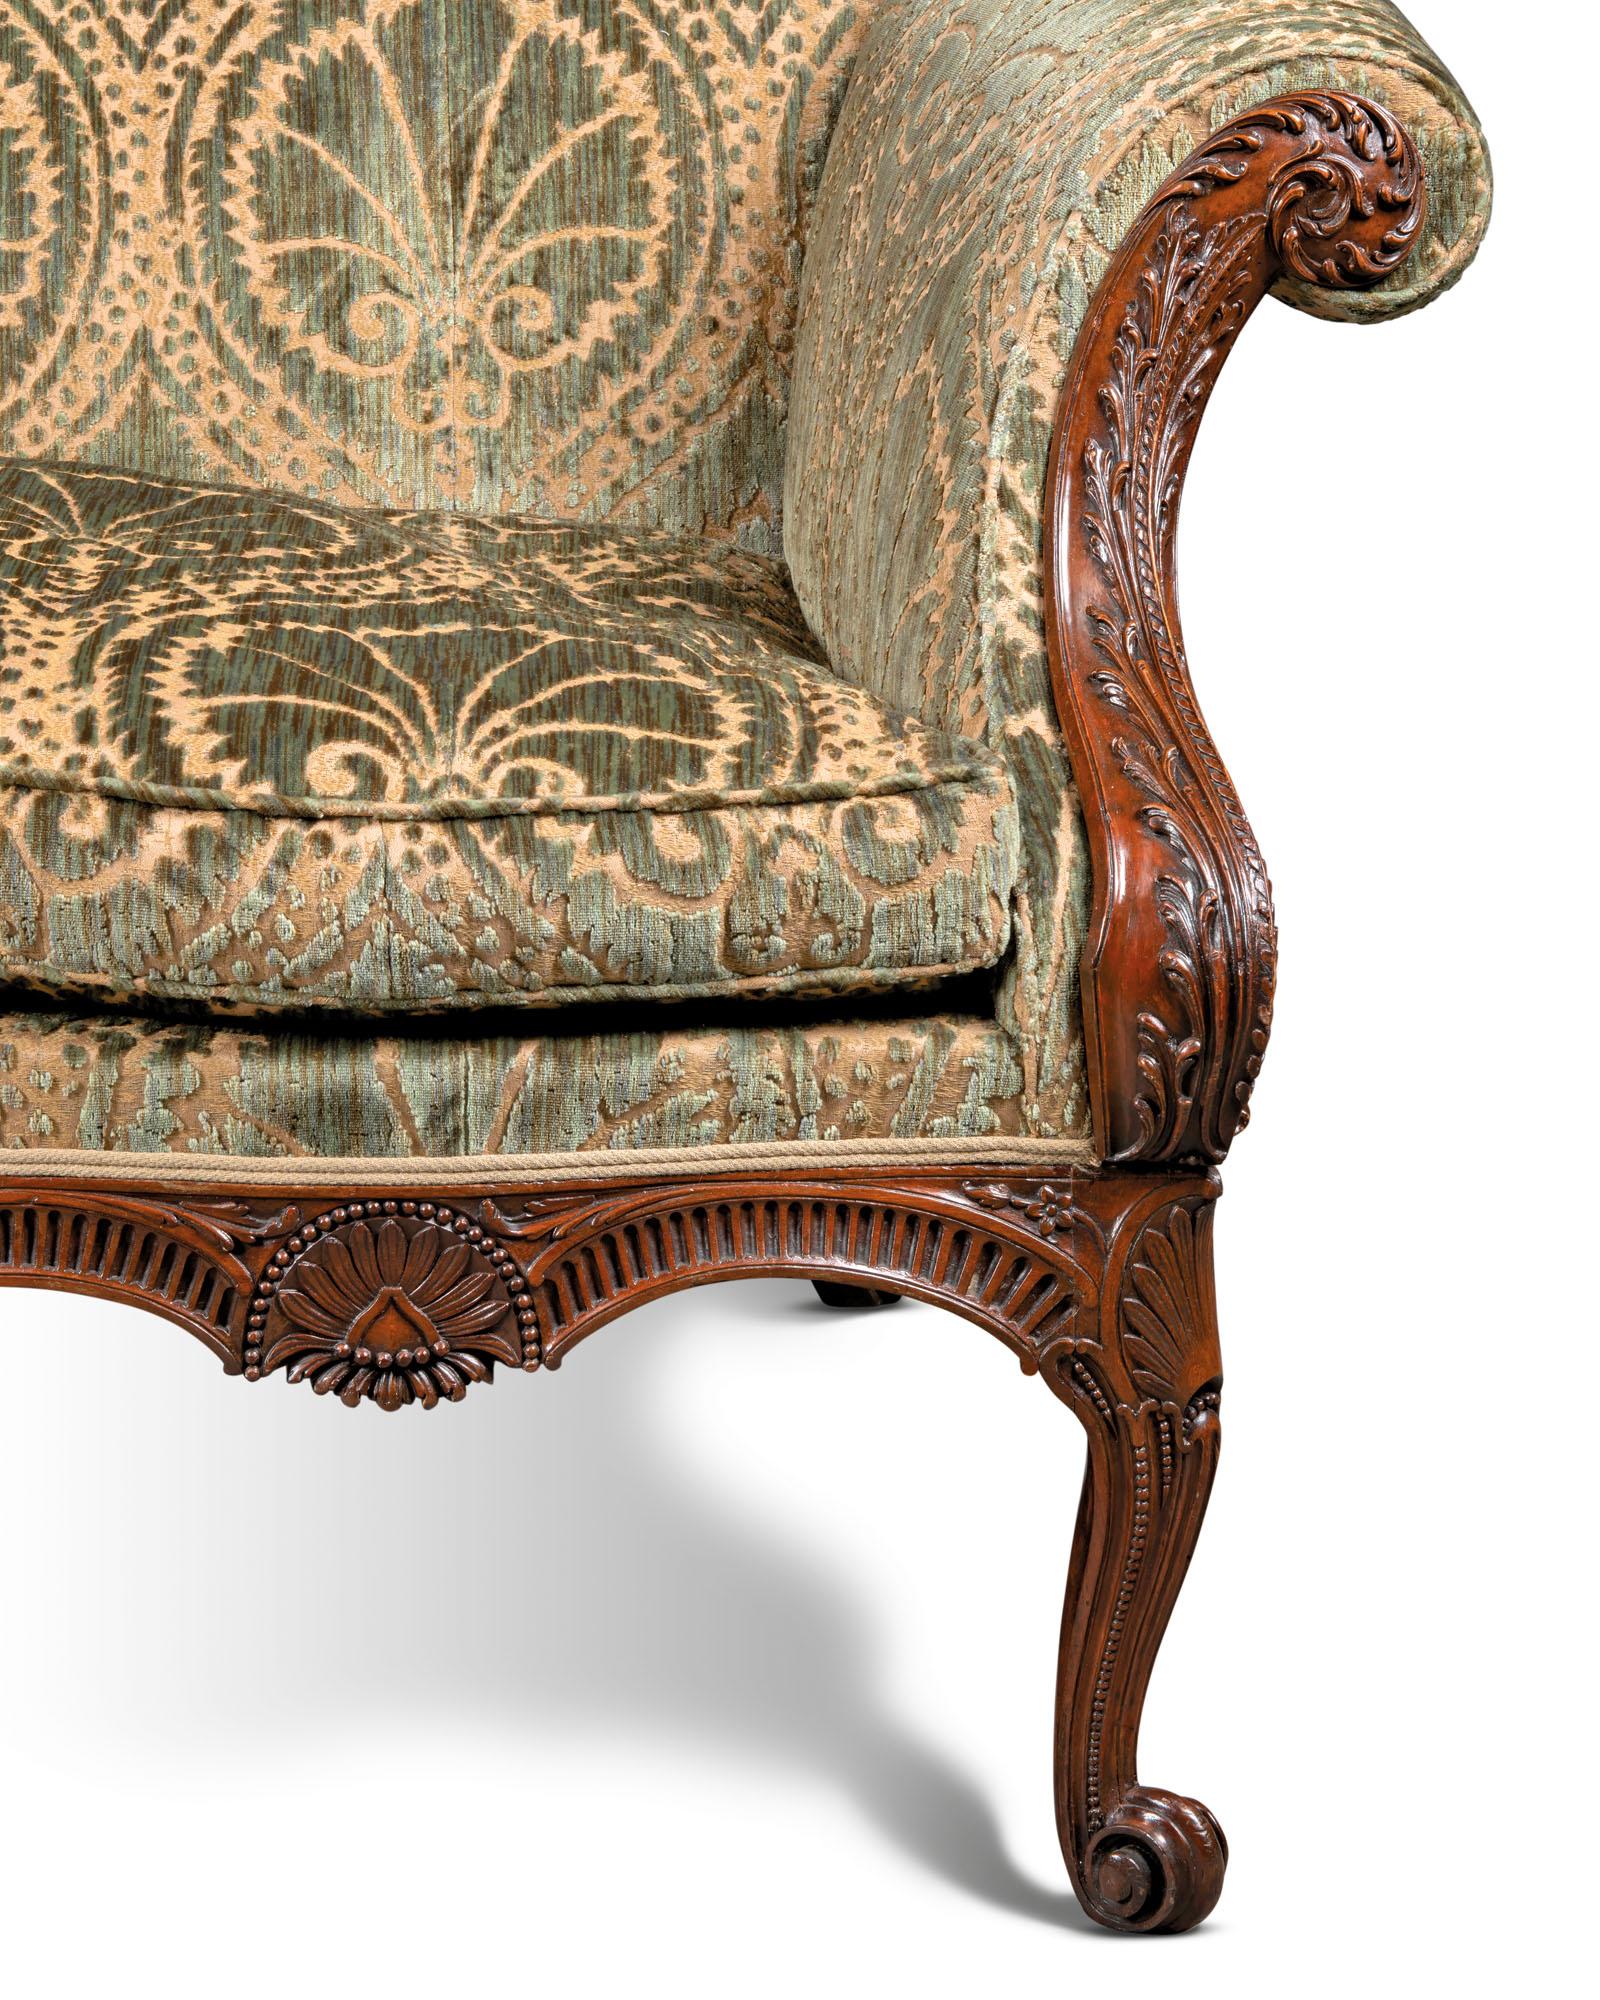 A GEORGE II FUSTIC AND SATINWOOD SOFA